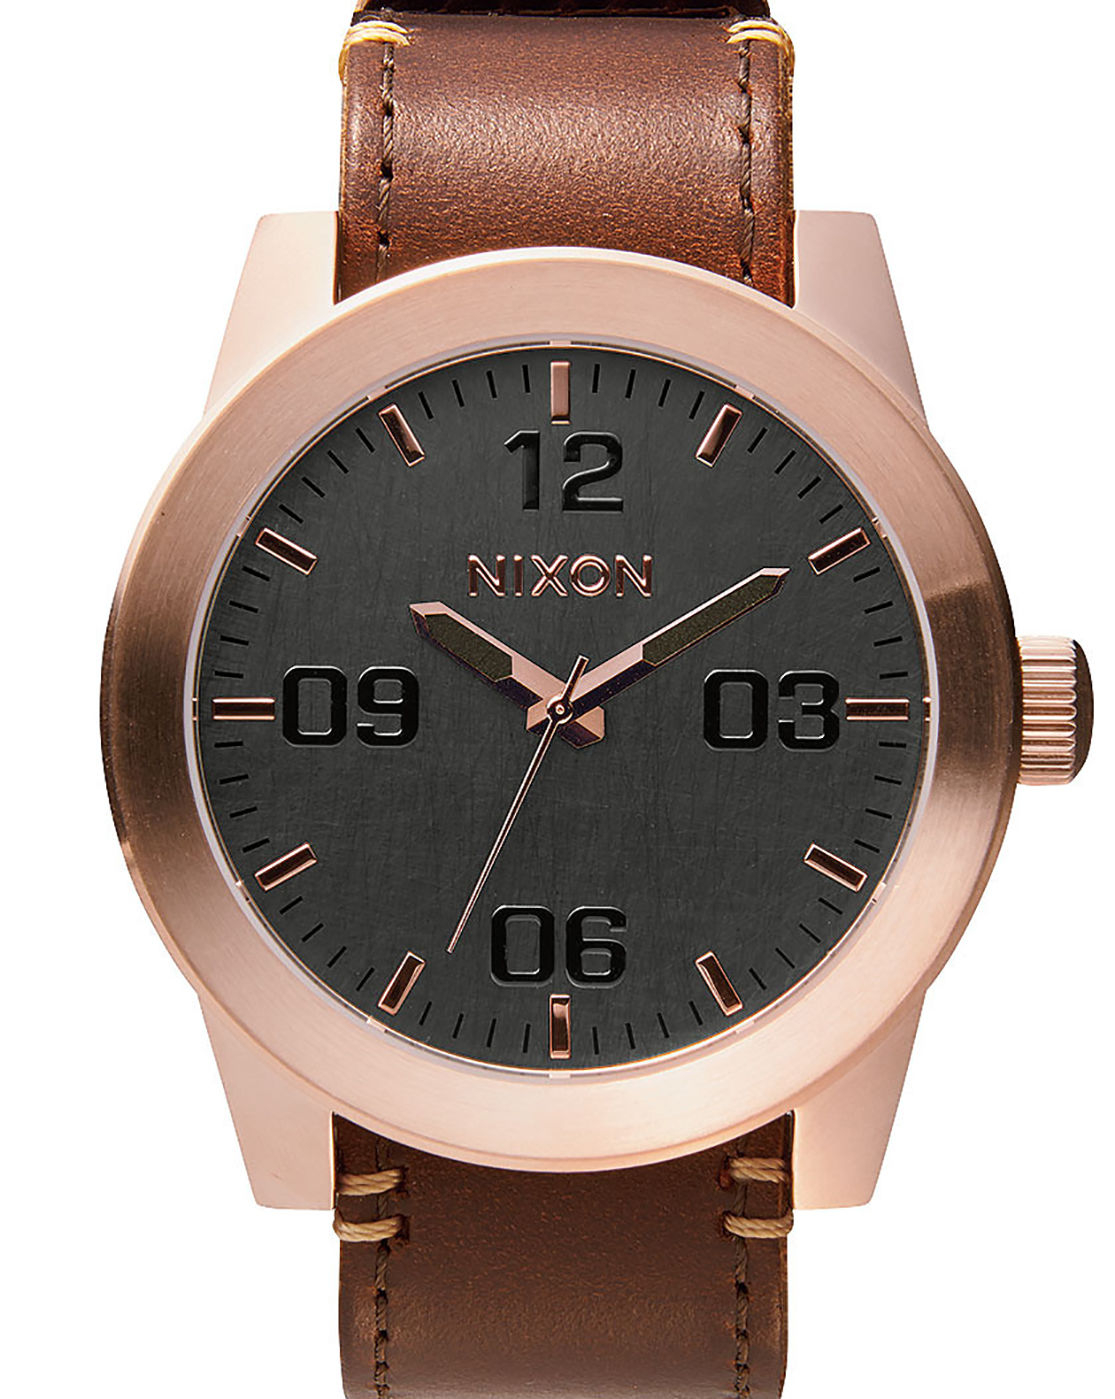 Nixon Corporal Watch In Rose Gold With Brown Horween ...